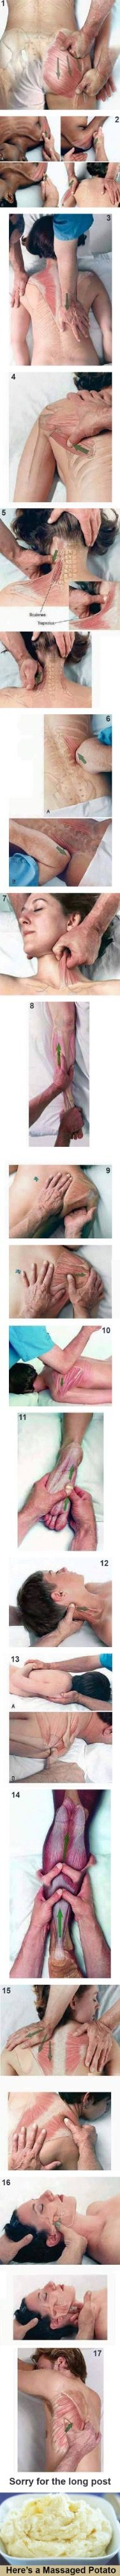 Click to read | image: How to give a GREAT massage! Also visit www.jw.org the worlds best and most unique website available in 800+ languages answering life's biggest and most important questions! Free.